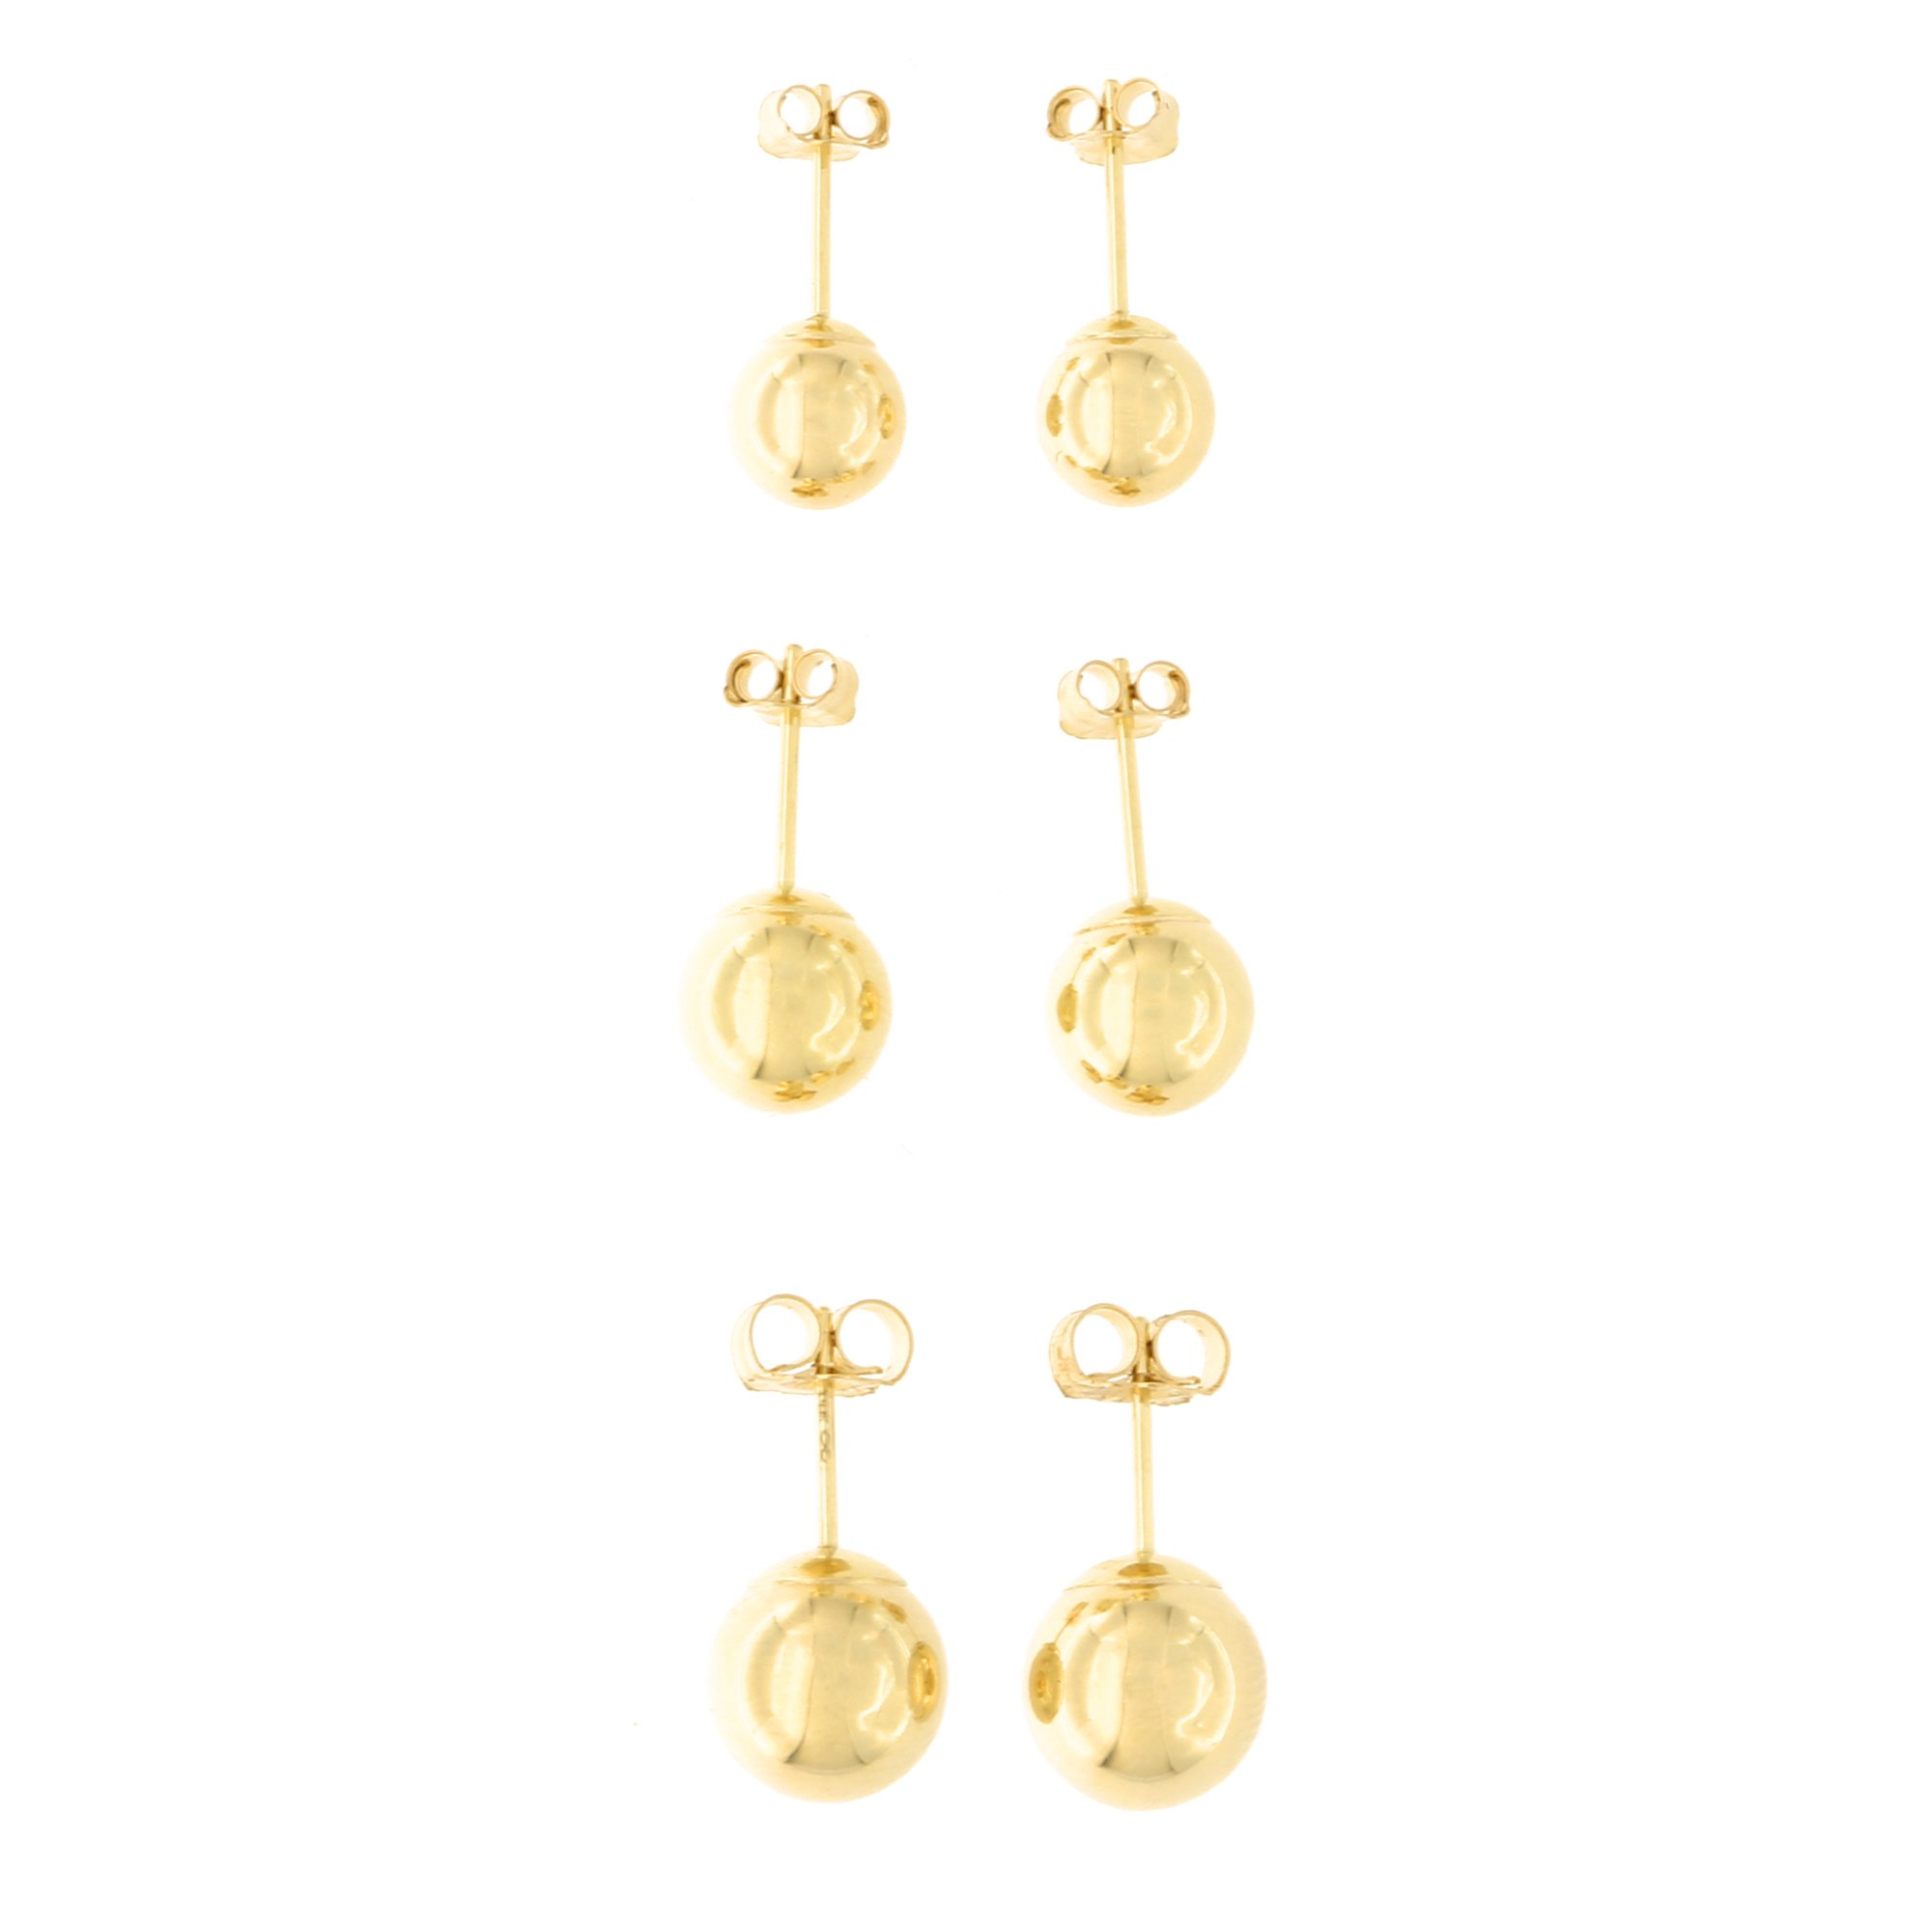 14k Yellow Gold 6mm, 7mm and 8mm Ball Stud Earrings Set